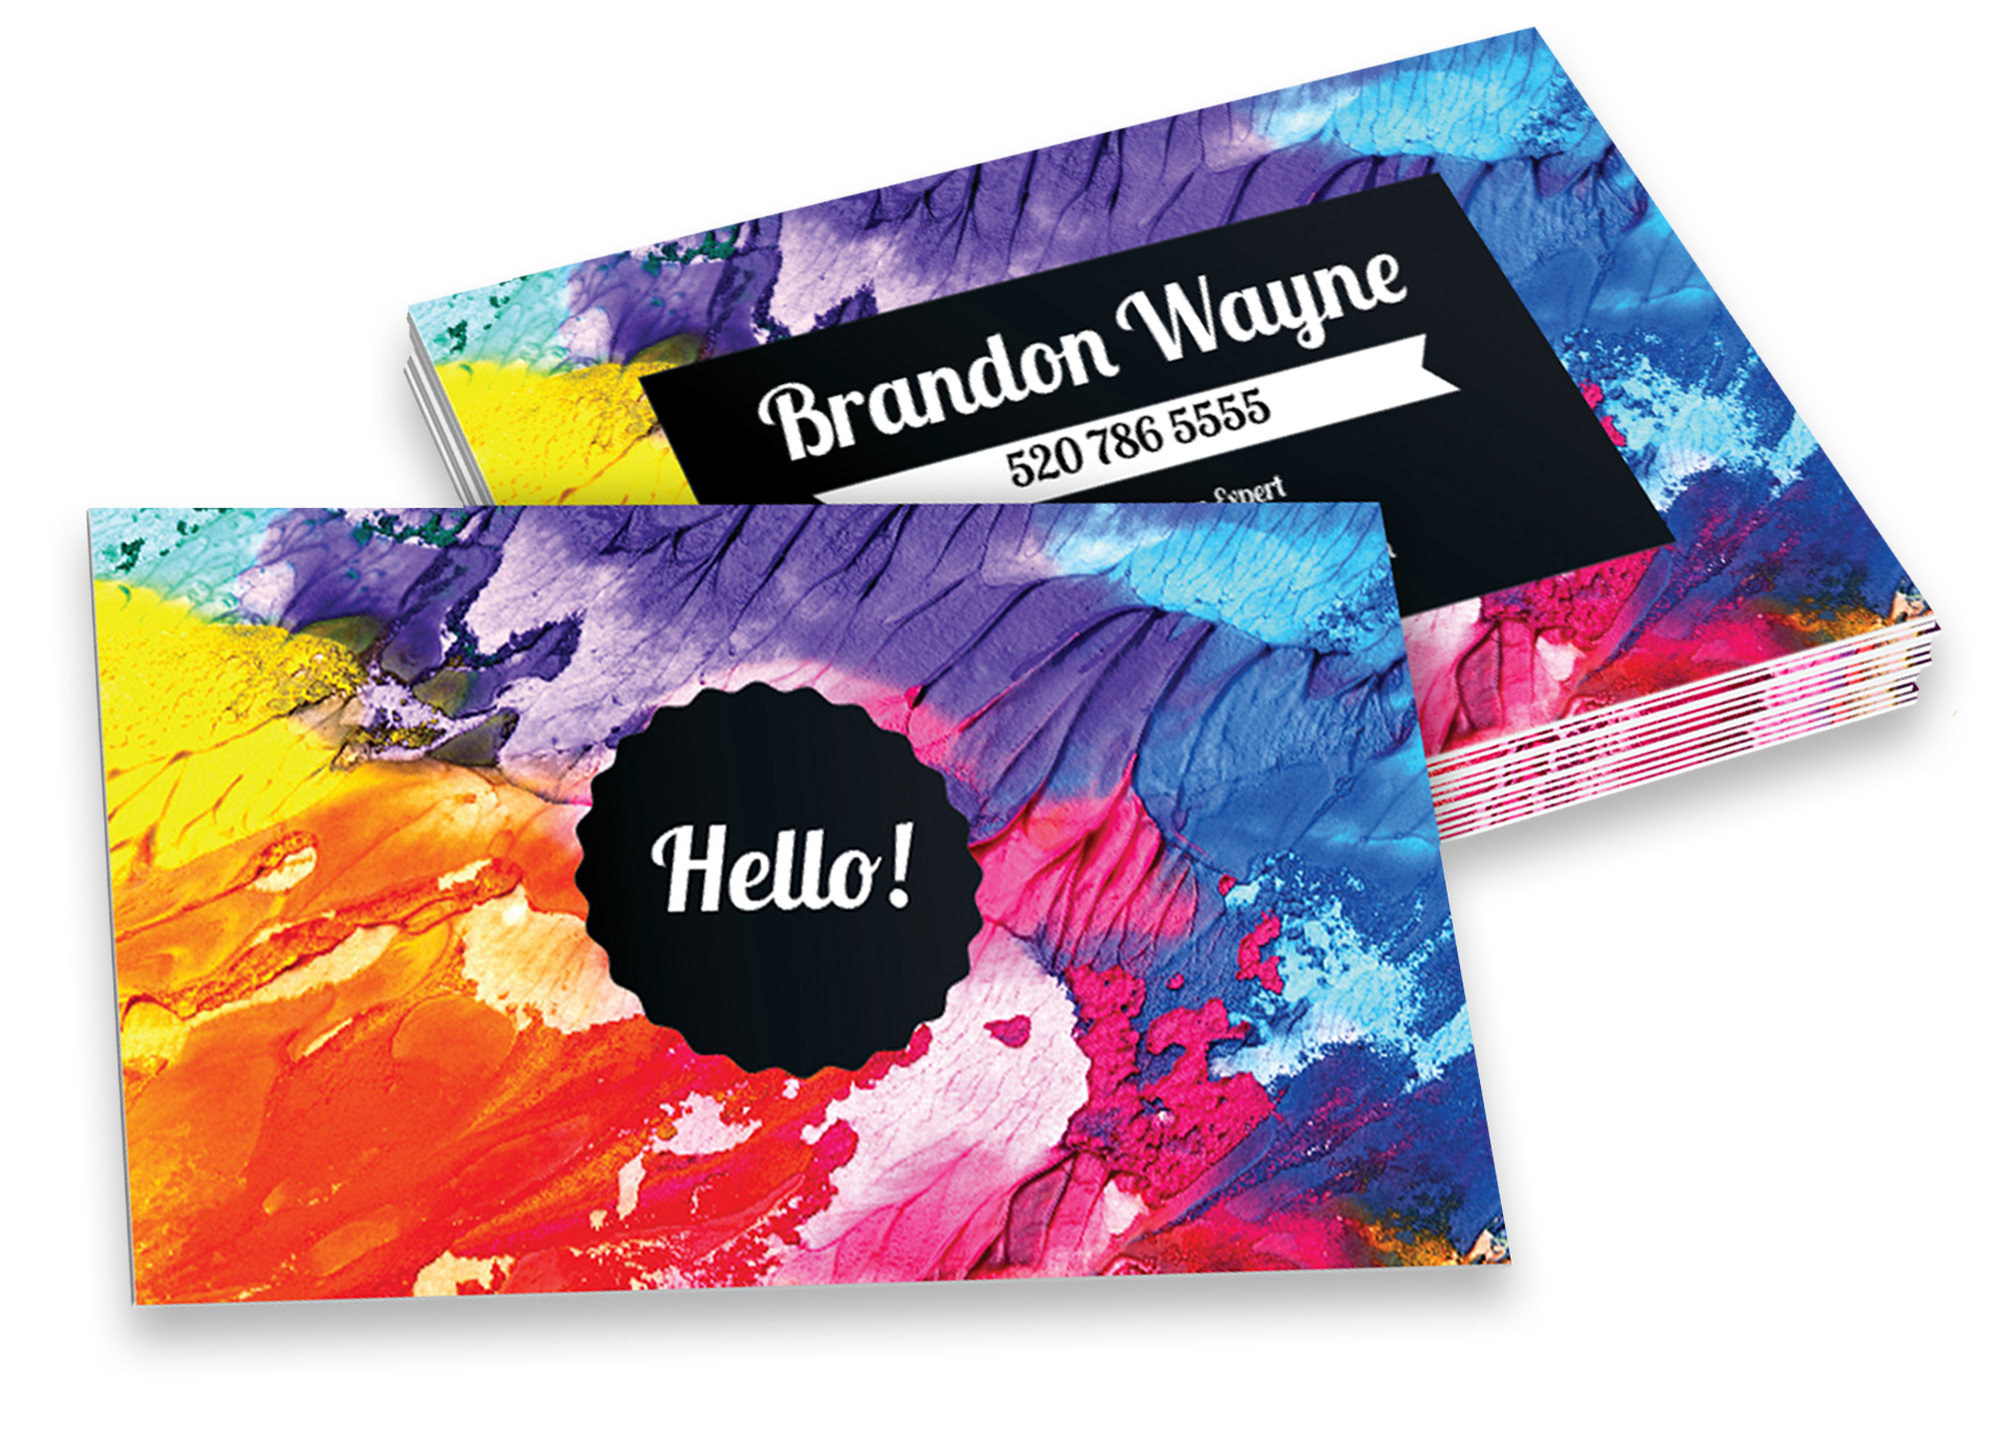 https://www.k12print.com/images/products_gallery_images/standard_business_cards3949.jpg